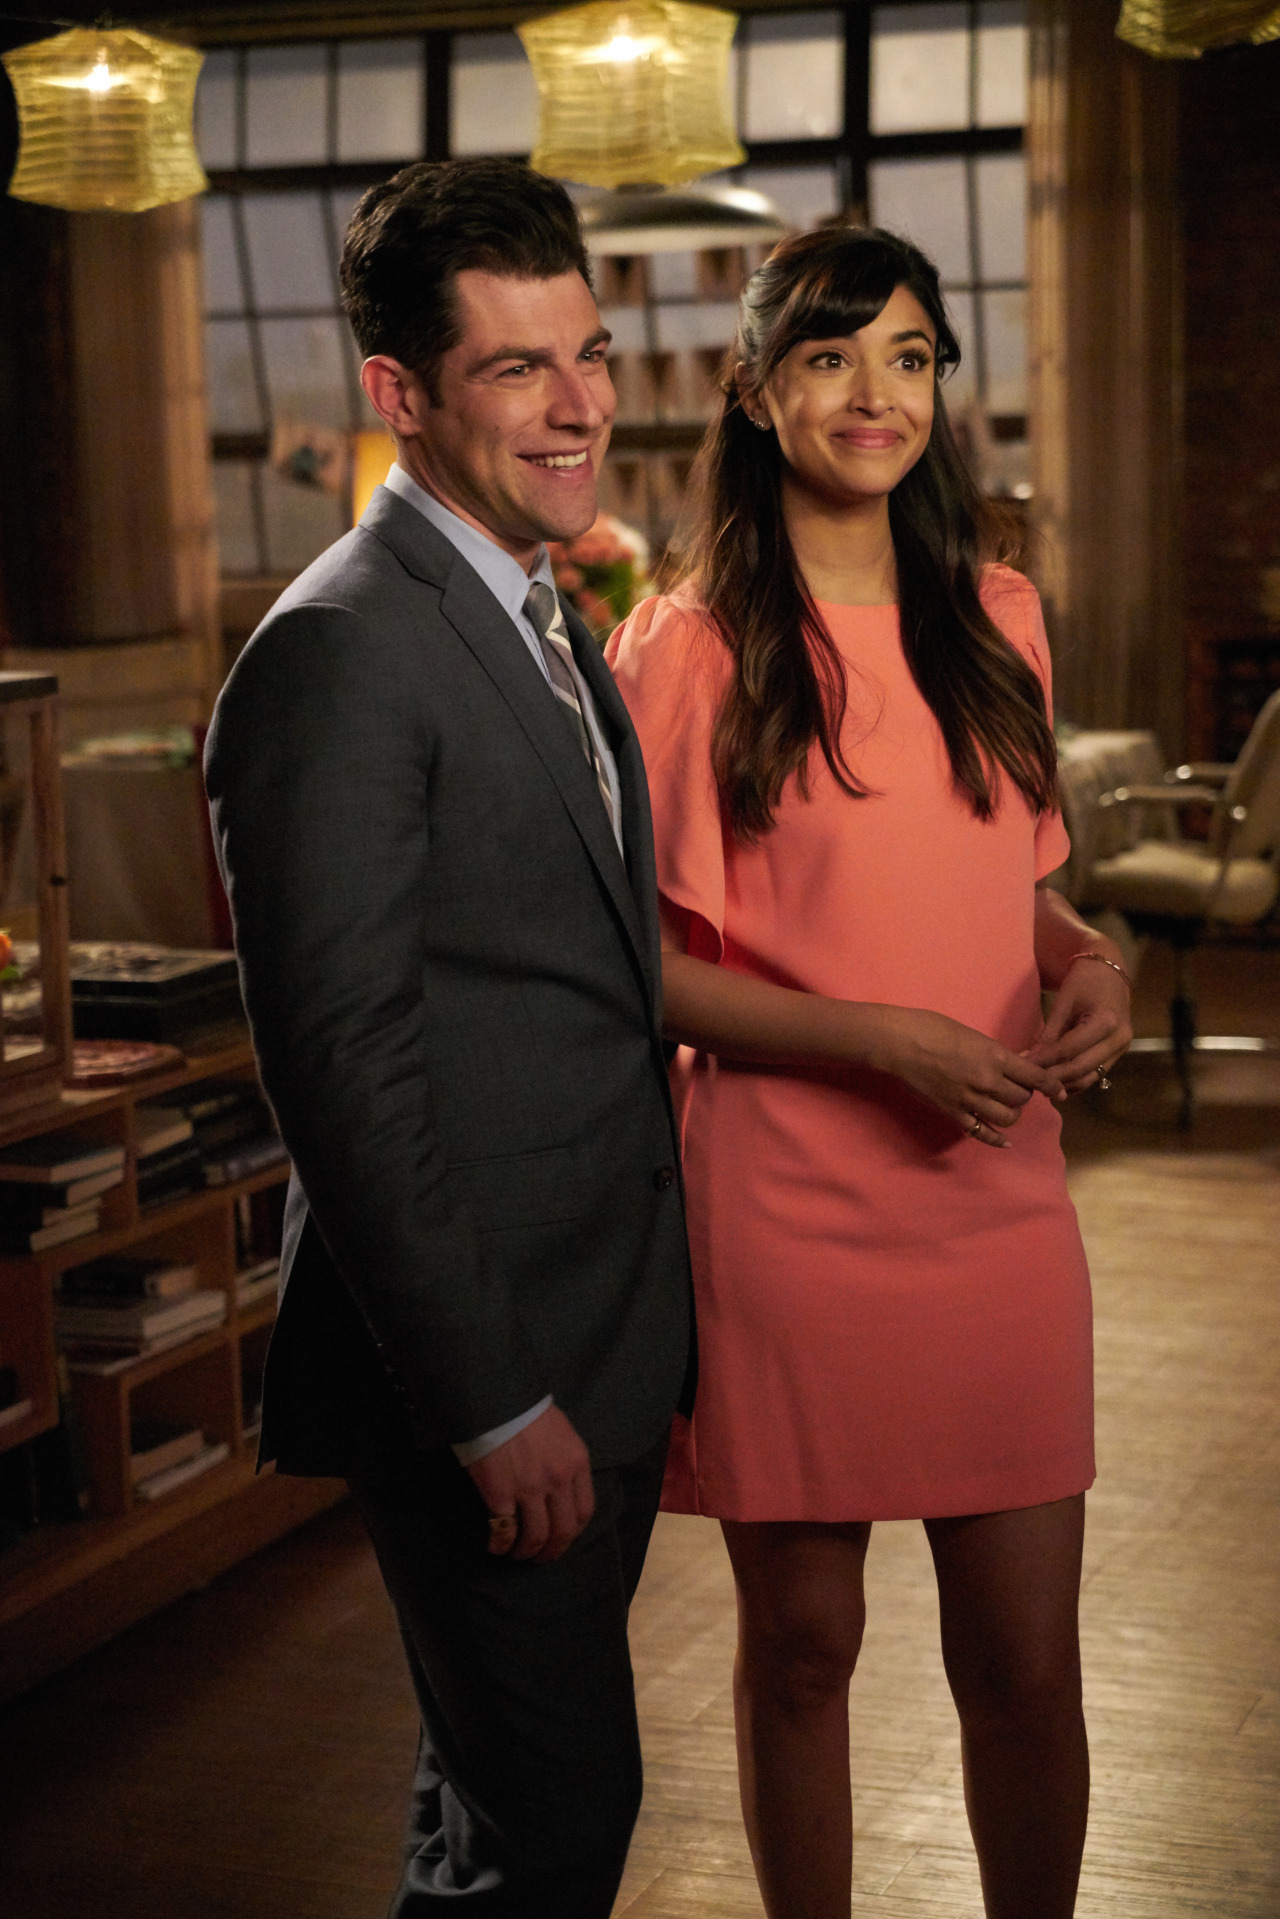 When do nick and jess start dating in new girl